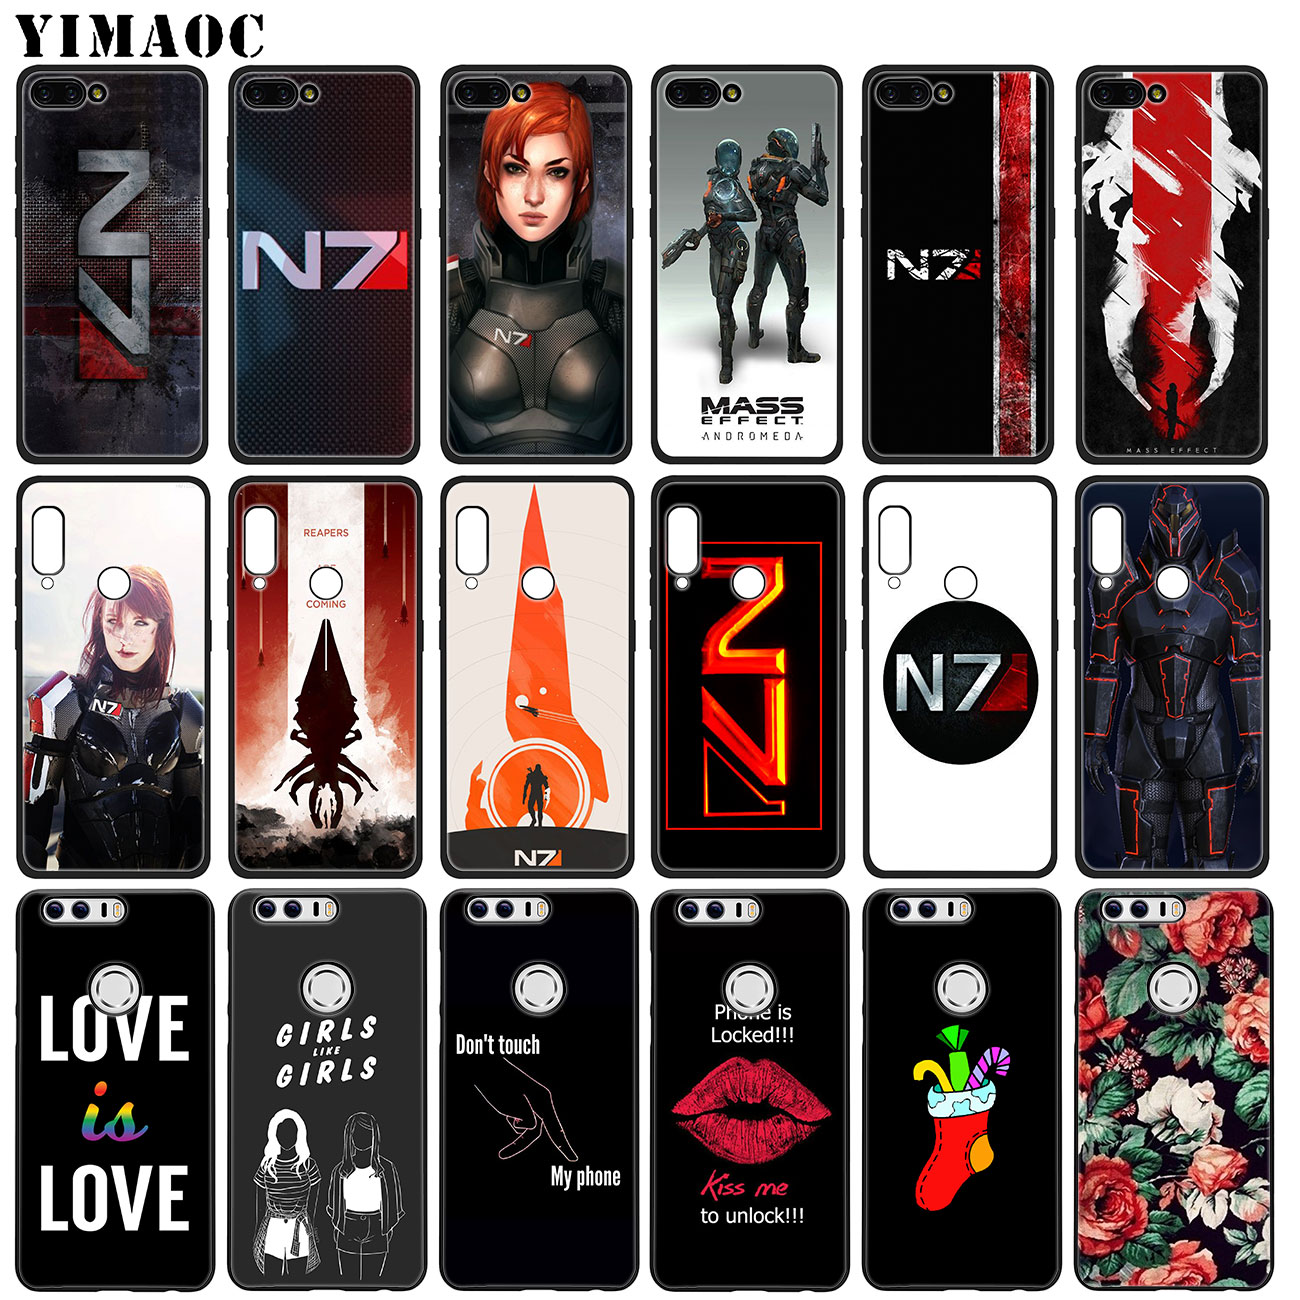 YIMAOC N7 Mass Effect Soft Silicone Case for Huawei Y7 Y6 Prime Y9 2018  Honor 8C 8X 8 9 10 Lite 7C 7X 7A Pro flower Black Cover